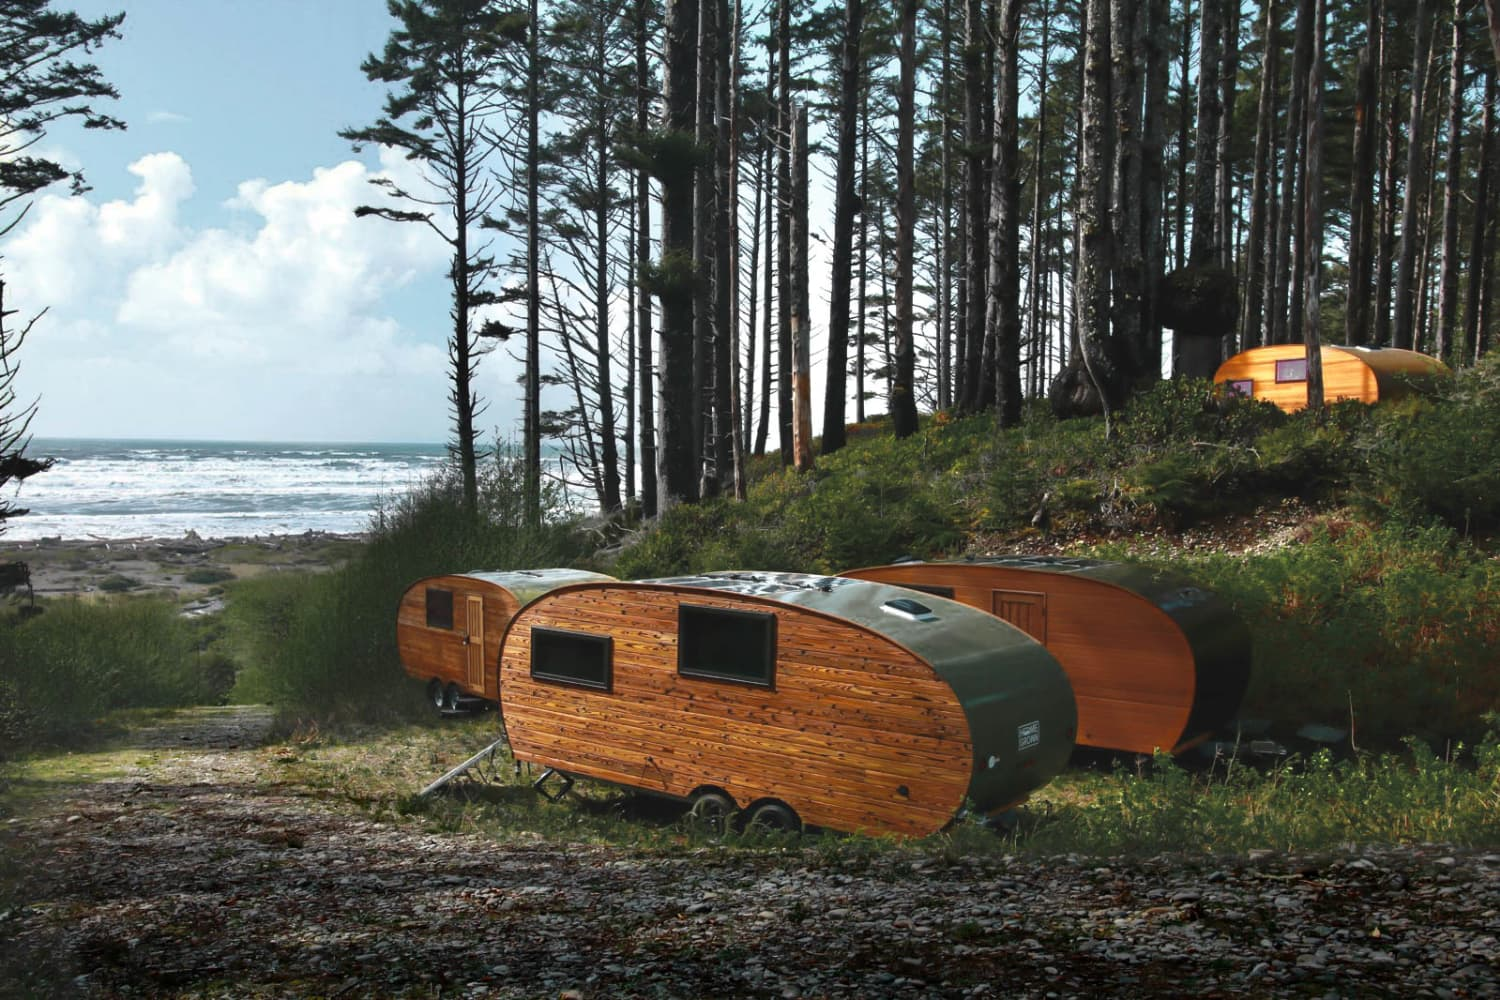 These Sustainable Tiny Campers in Washington State Are the Perfect Eco-Friendly Getaway